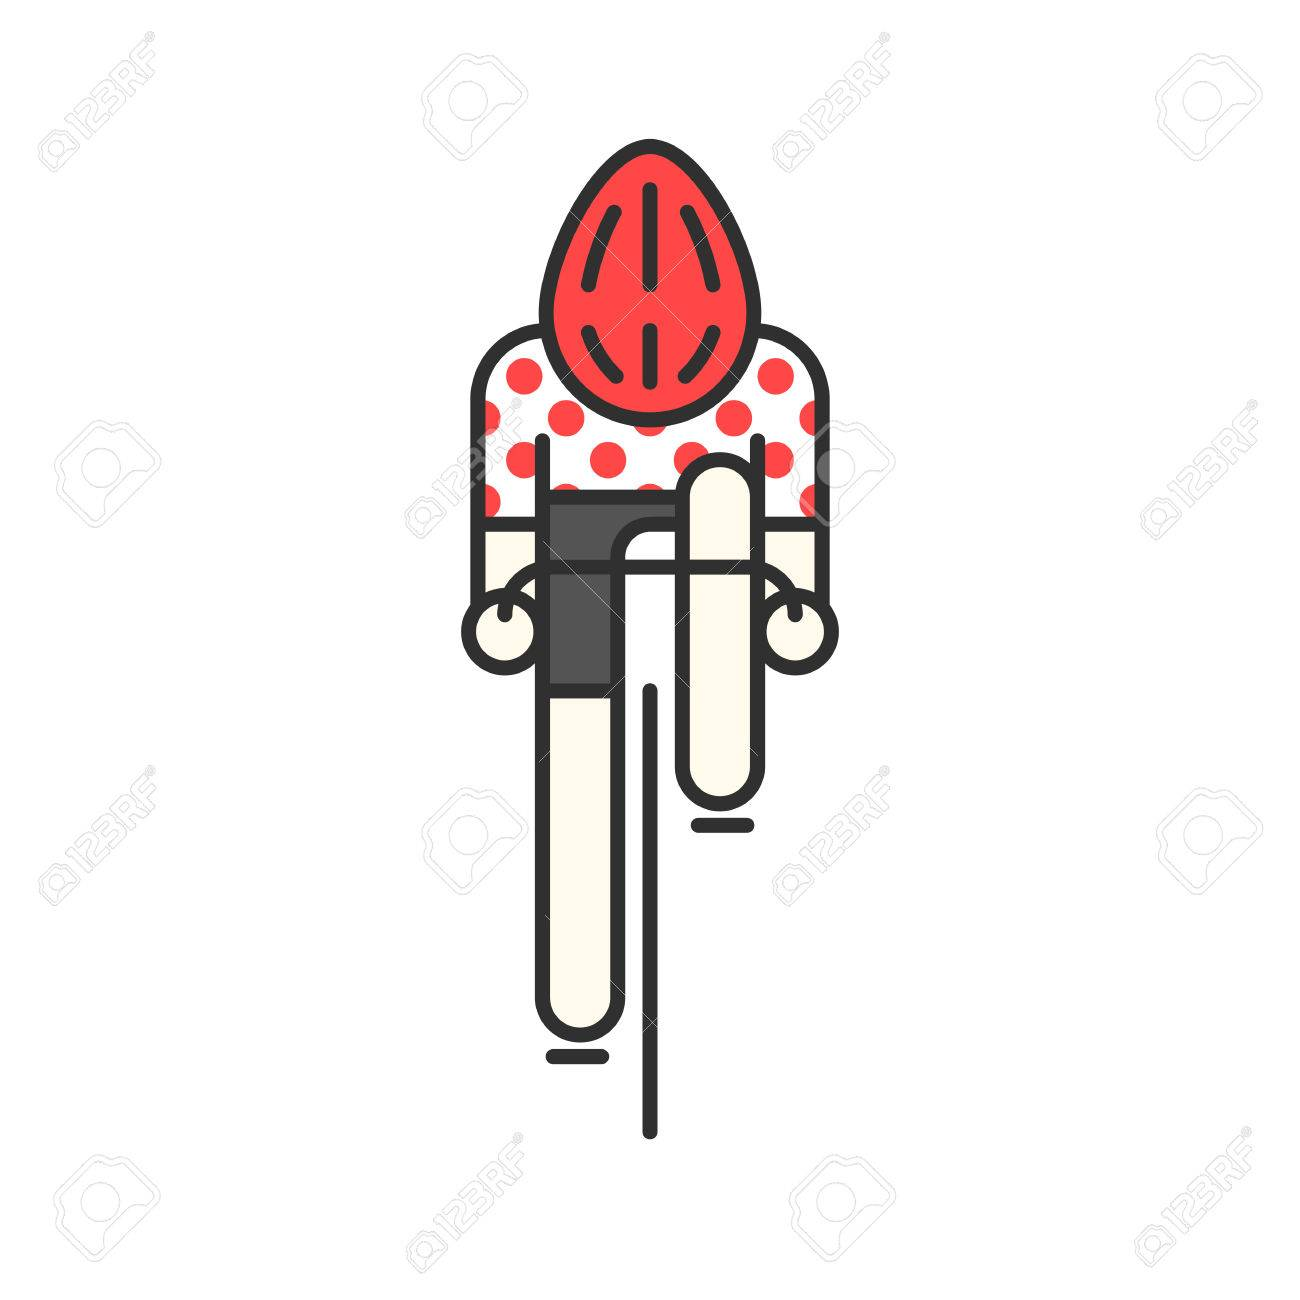 59c29dcf6 Modern Illustration of cyclist. Flat bicyclist in red polka dot jersey  isolated on white background